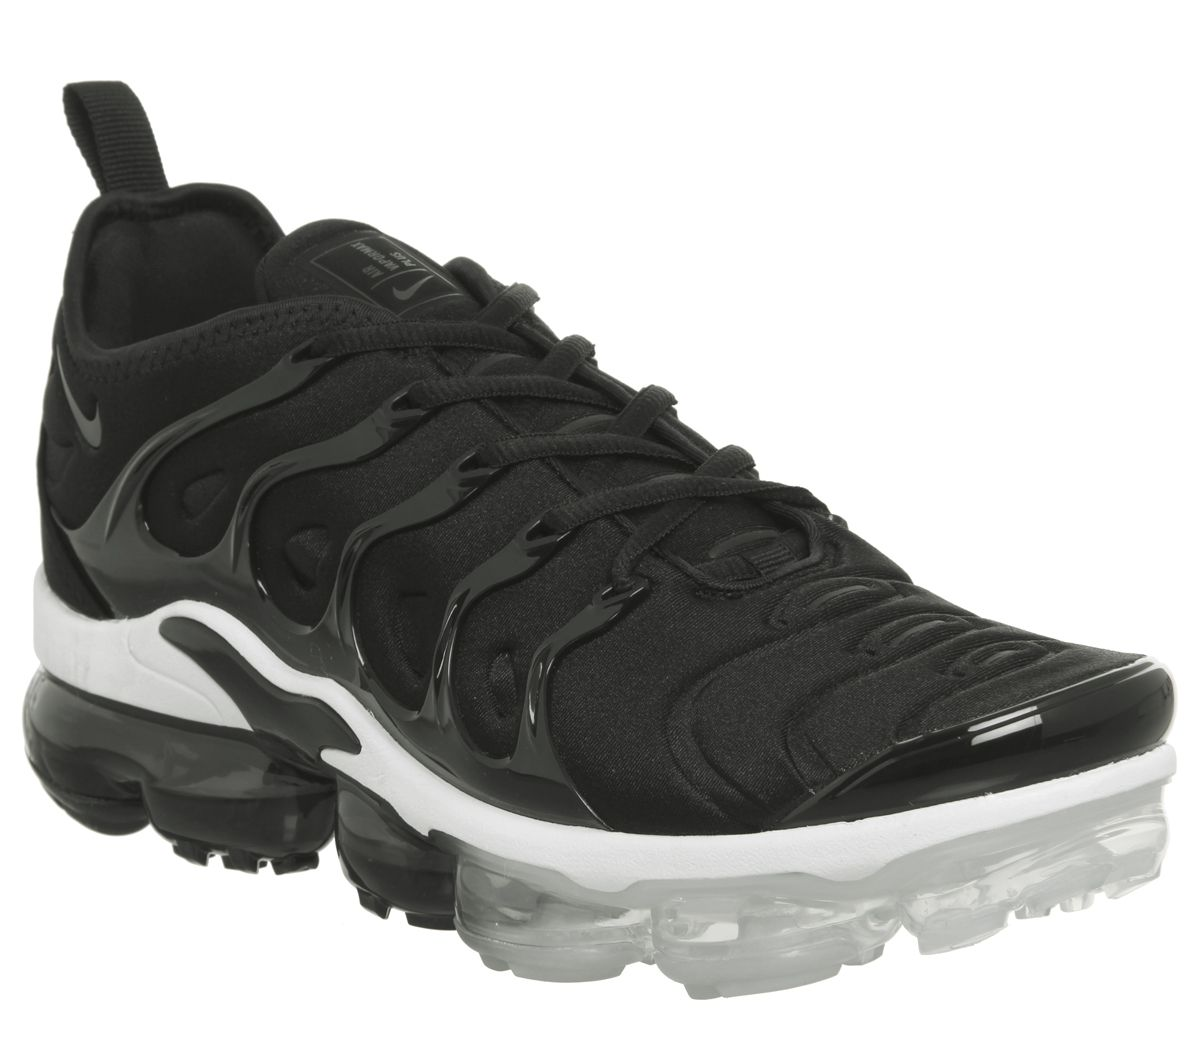 9dd9903c440cc Nike Vapormax Air Vapormax Plus Trainers Black White - His trainers